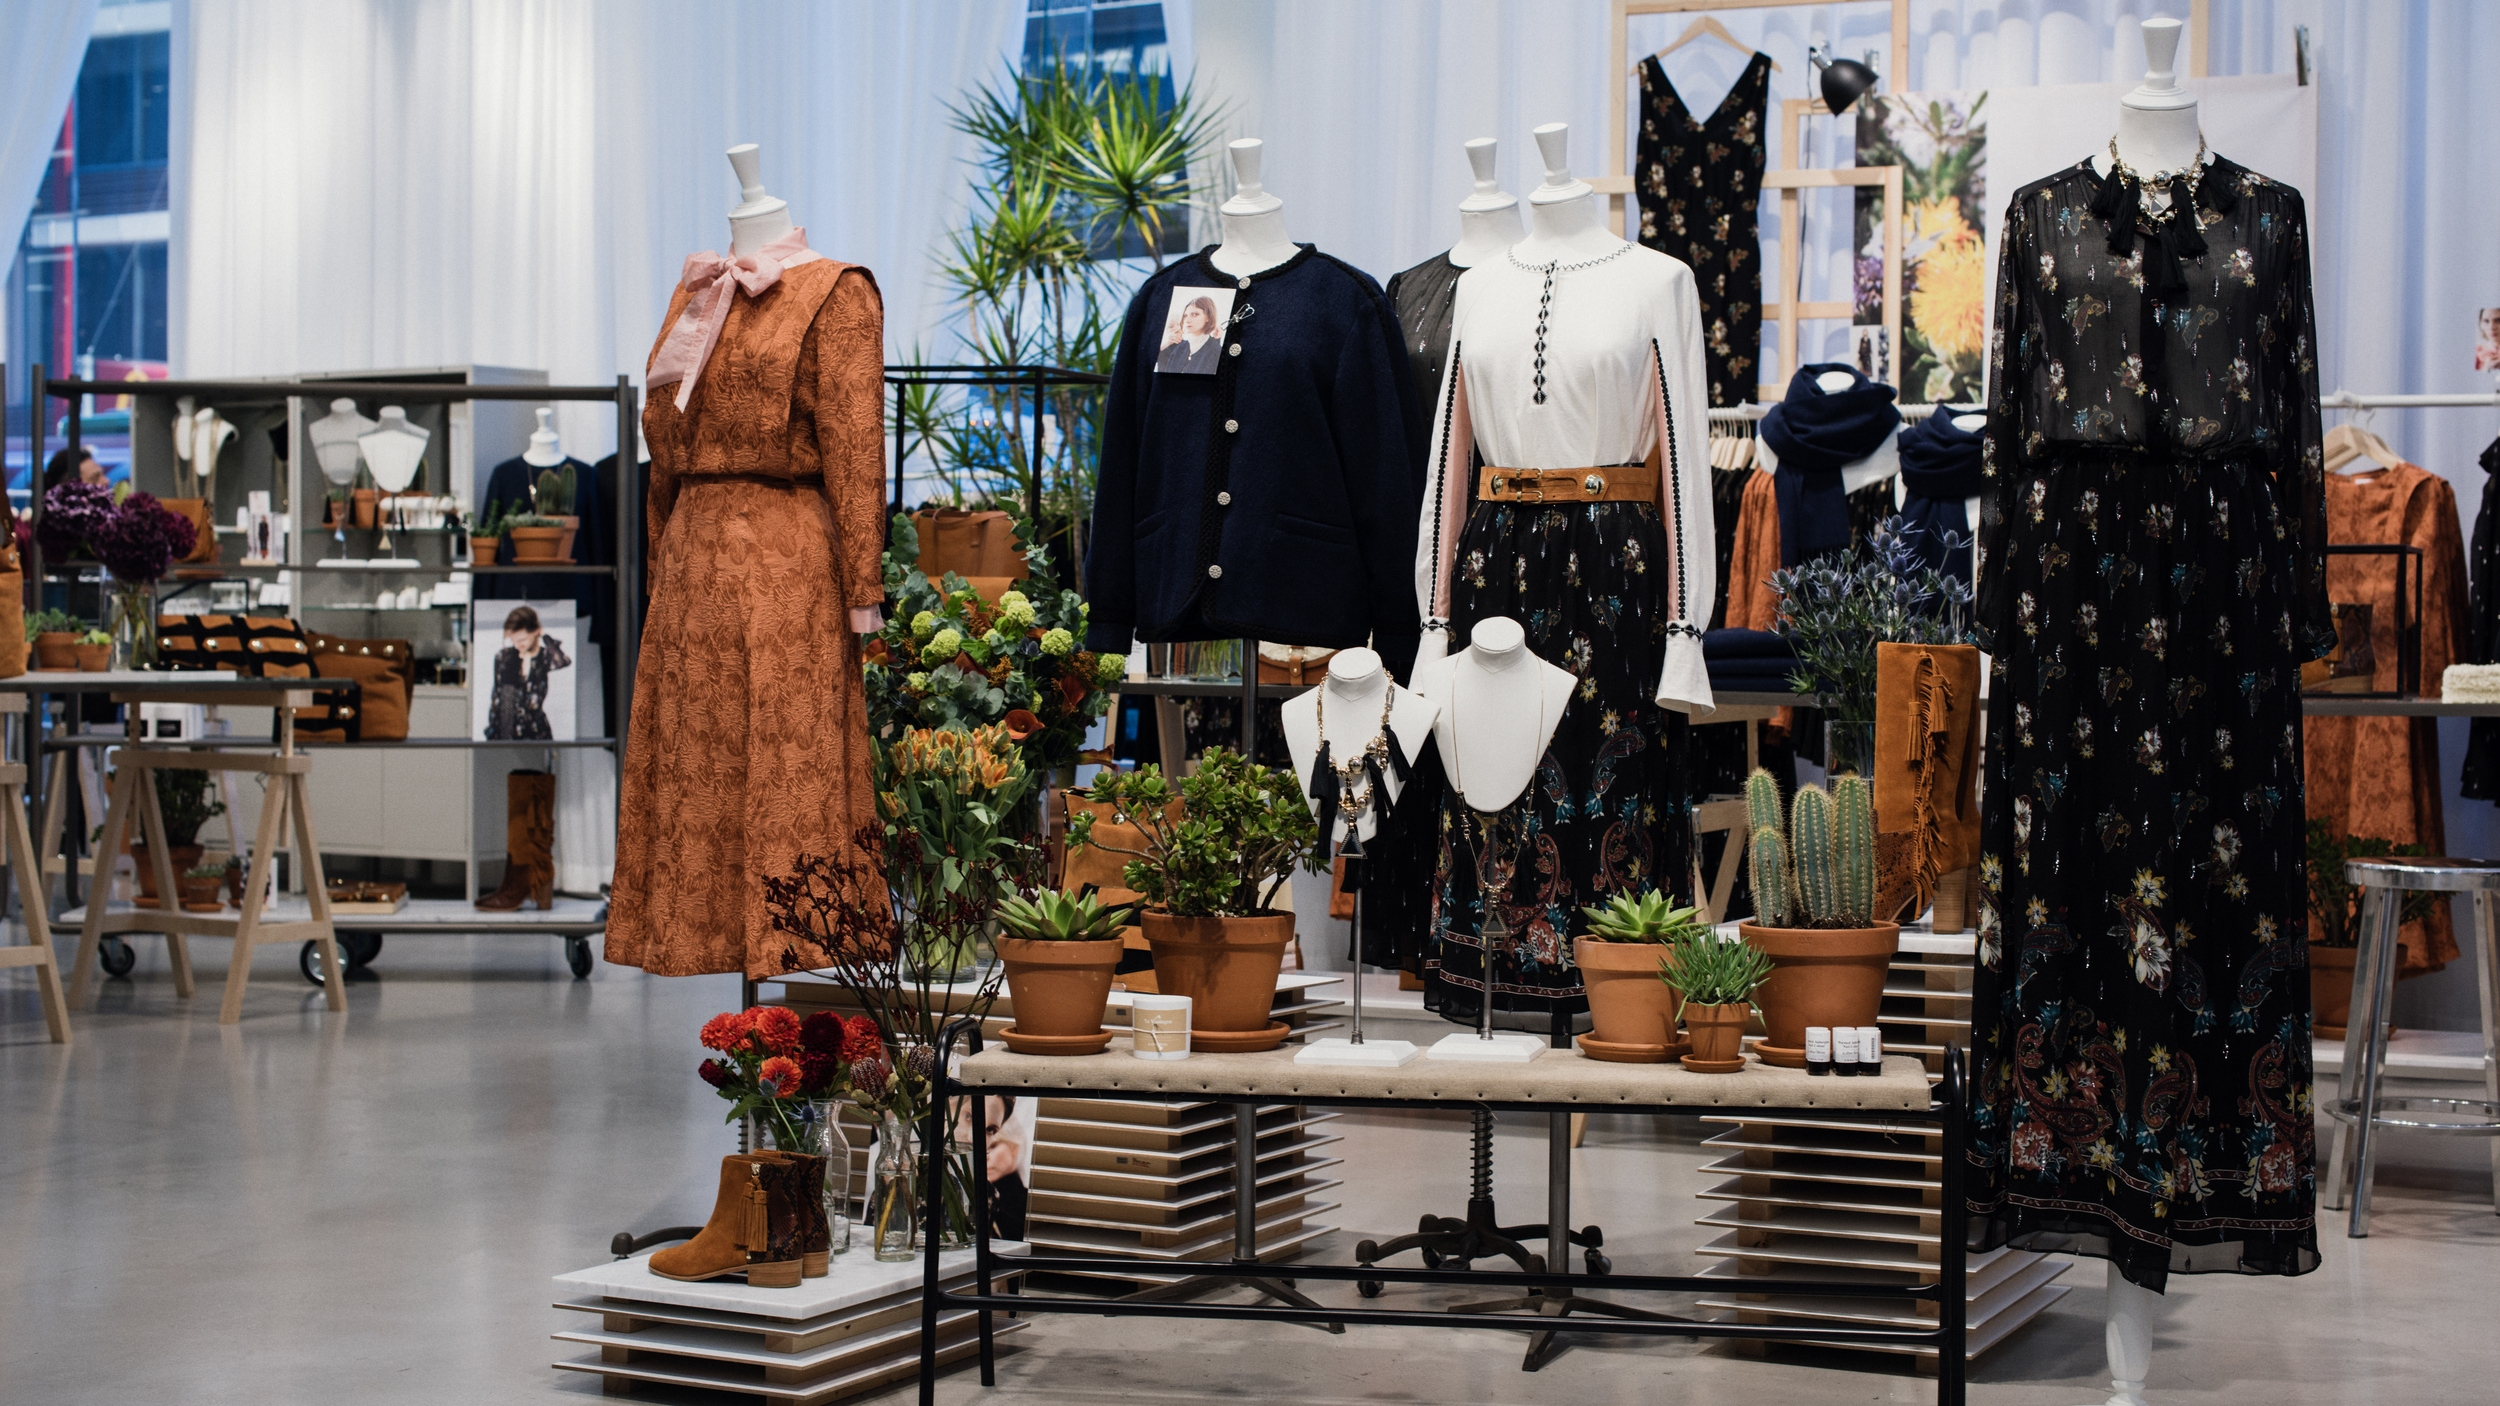 CoolBrands & Other Stories inside store picture.jpg